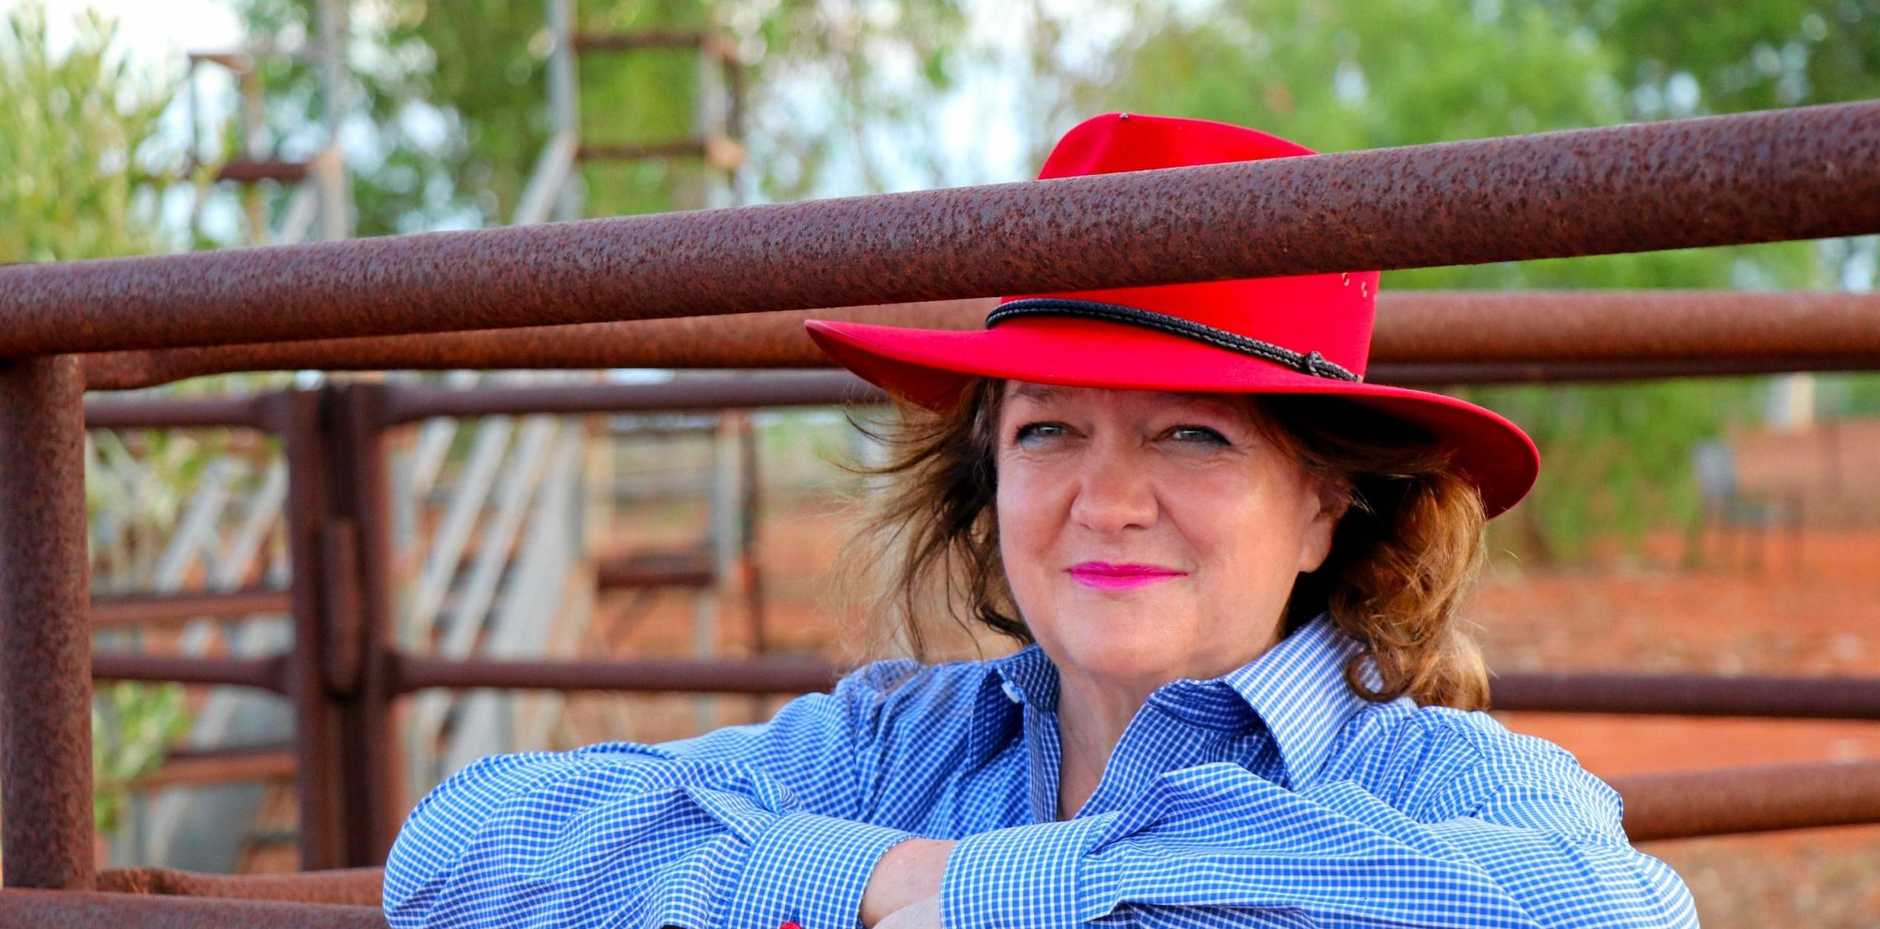 Gina Rinehart came third on the list.